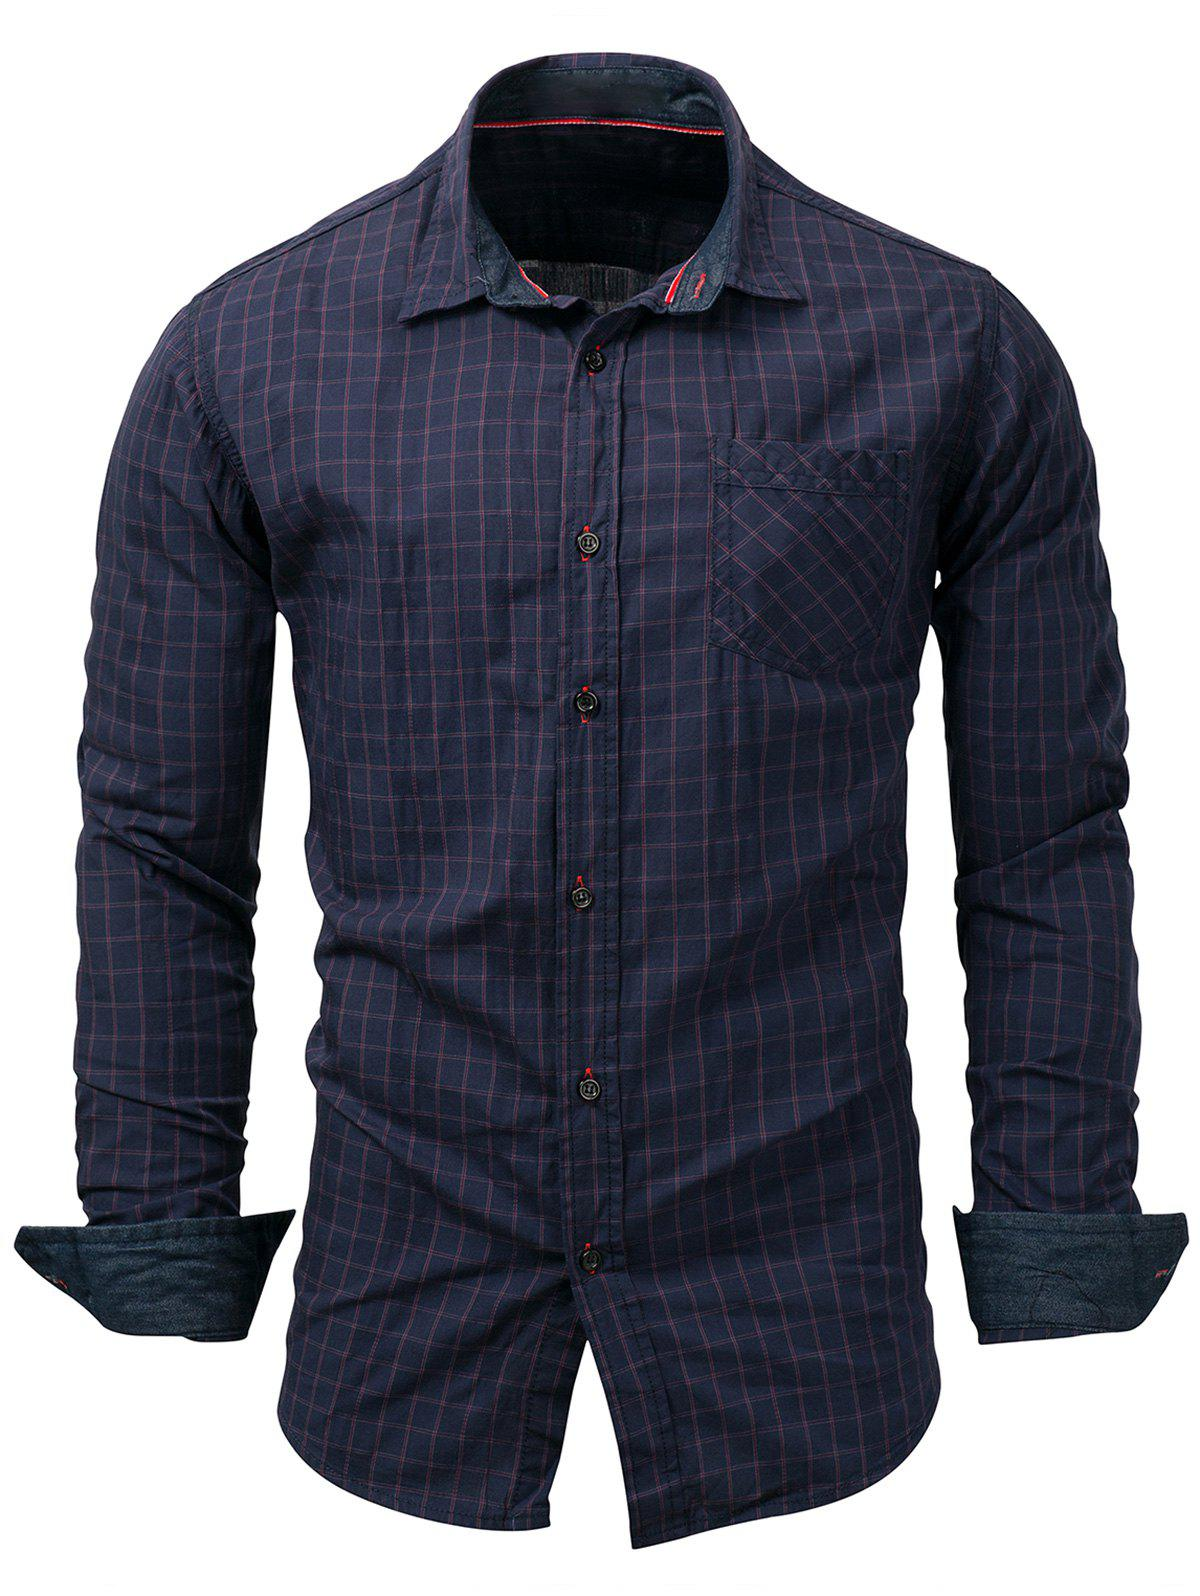 Chest Pocket Long Sleeve Checked Shirt автокресло zlatek atlantic группа 1 2 3 grey крес0167